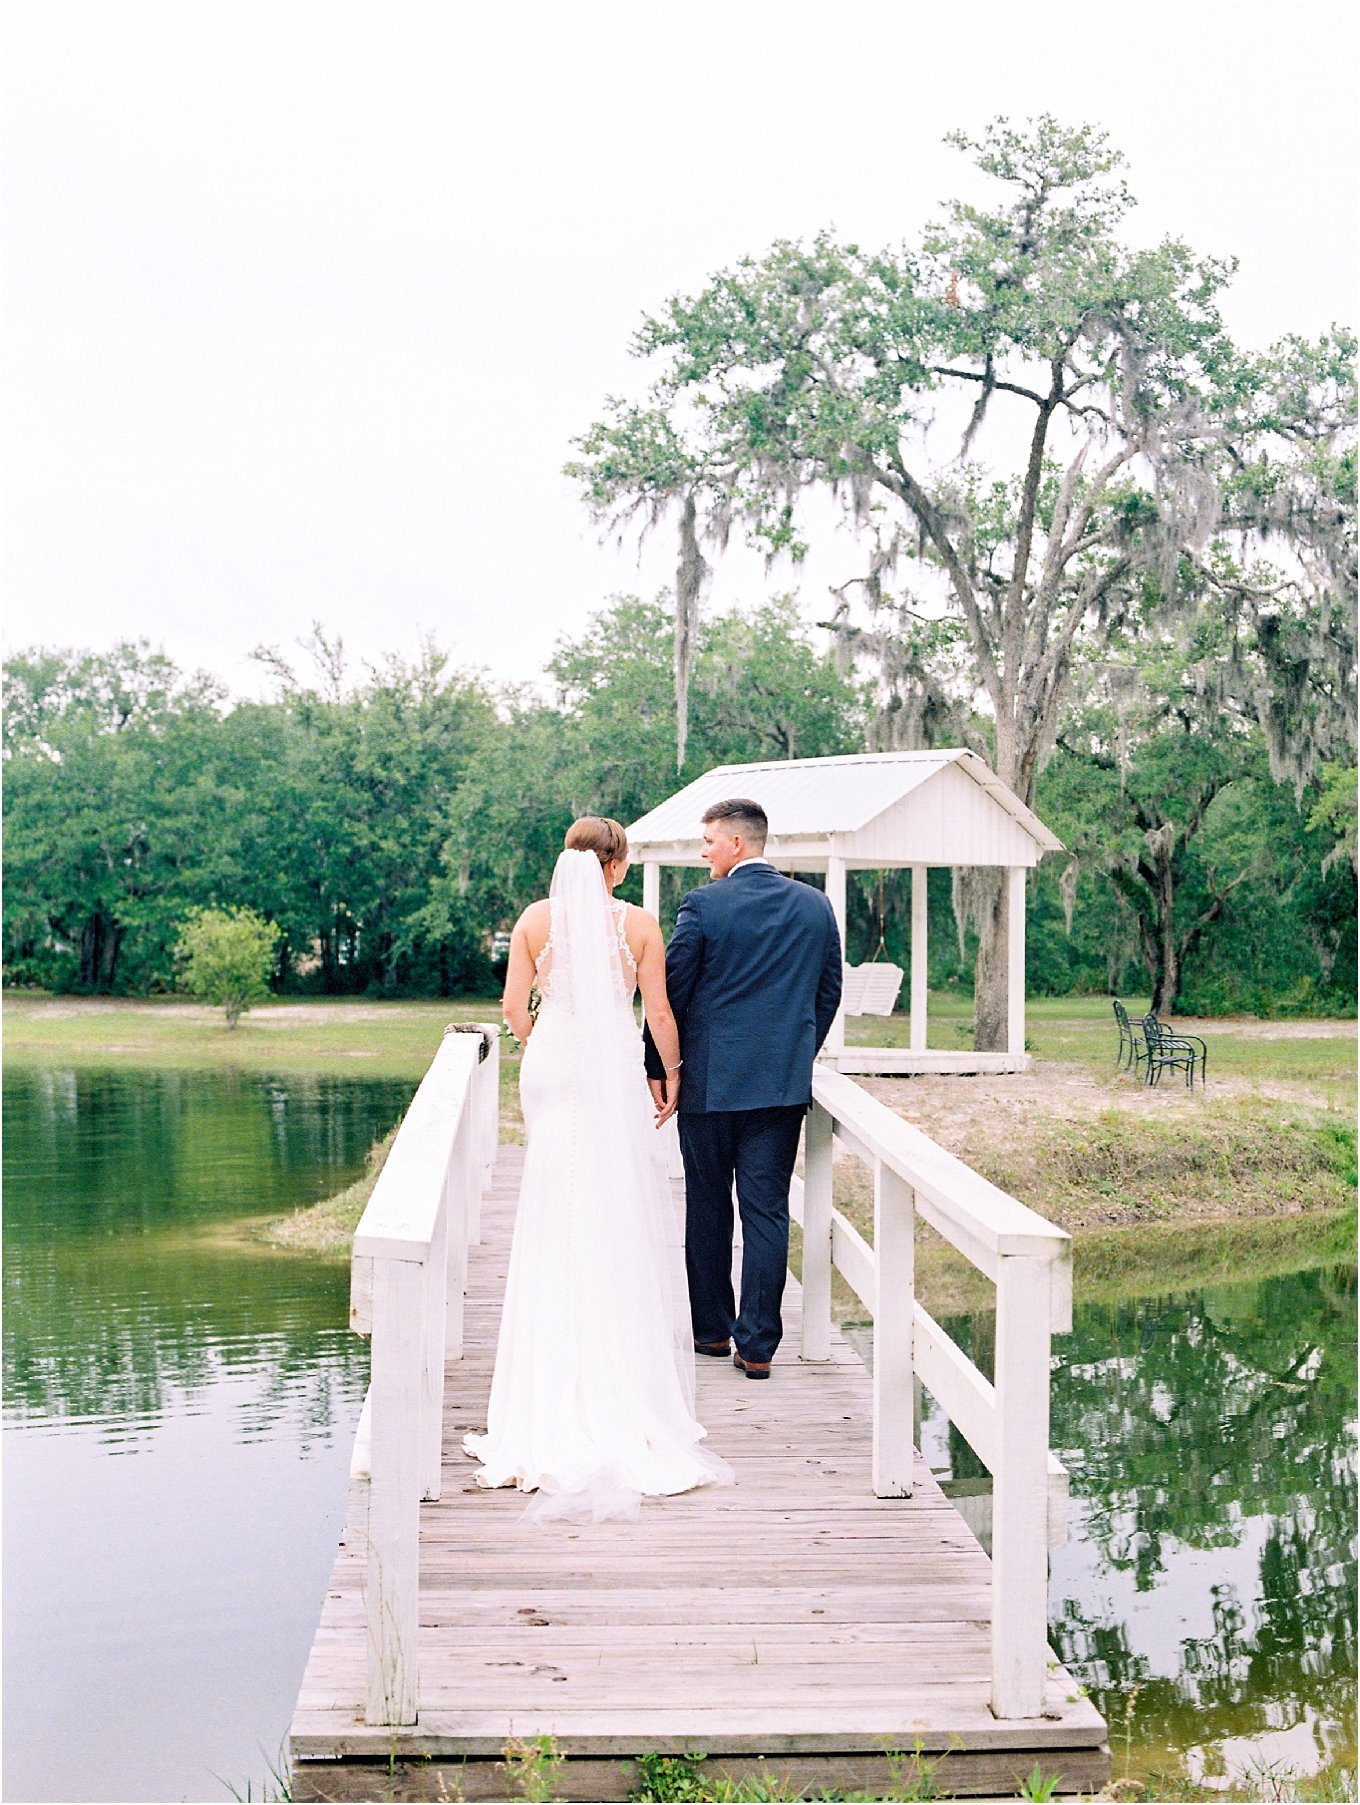 Lisa Silva Photography- Ponte Vedra Beach, St. Augustine and Jacksonville, Florida Fine Art Film Wedding and Boudoir Photography- Elegant Blush and Navy Wedding at Chandler Oaks Barn in St. Augustine, Florida_0082.jpg